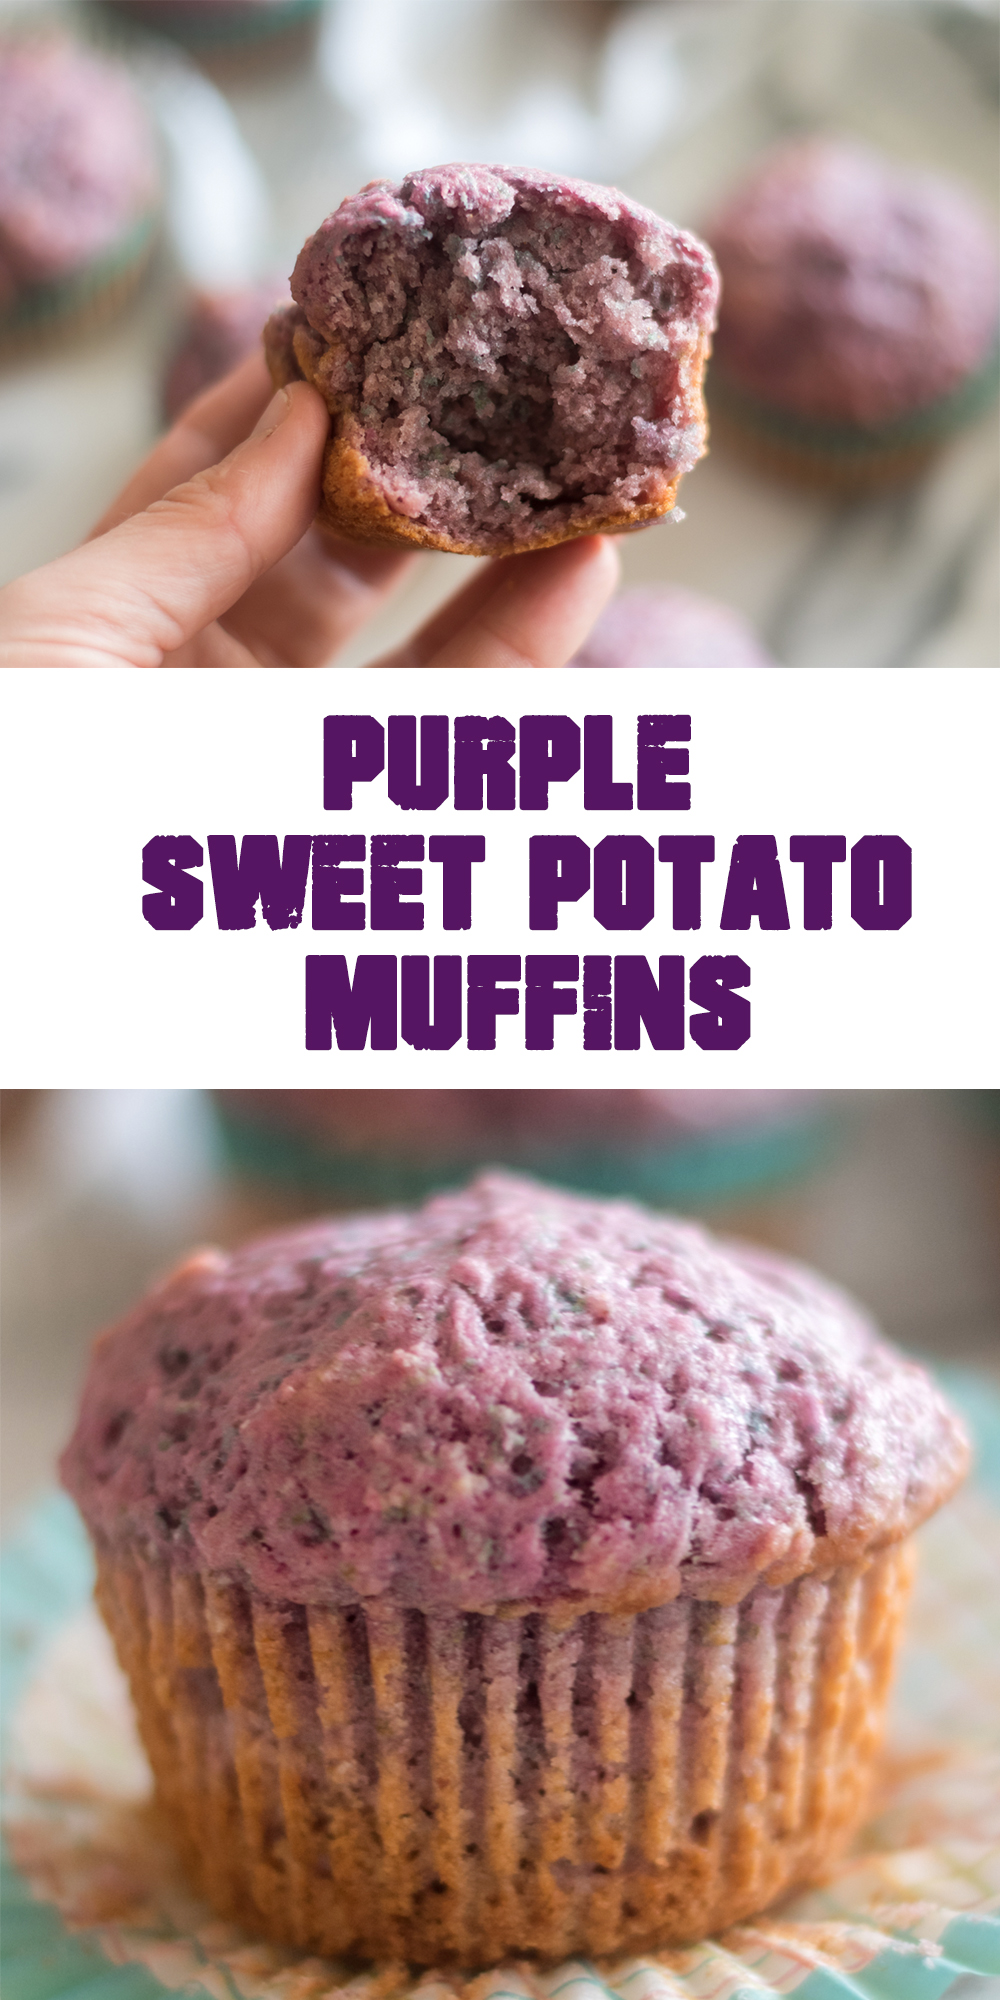 Purple Sweet Potato Muffins are a moist, tender muffins that are delicious! #muffin #vegan